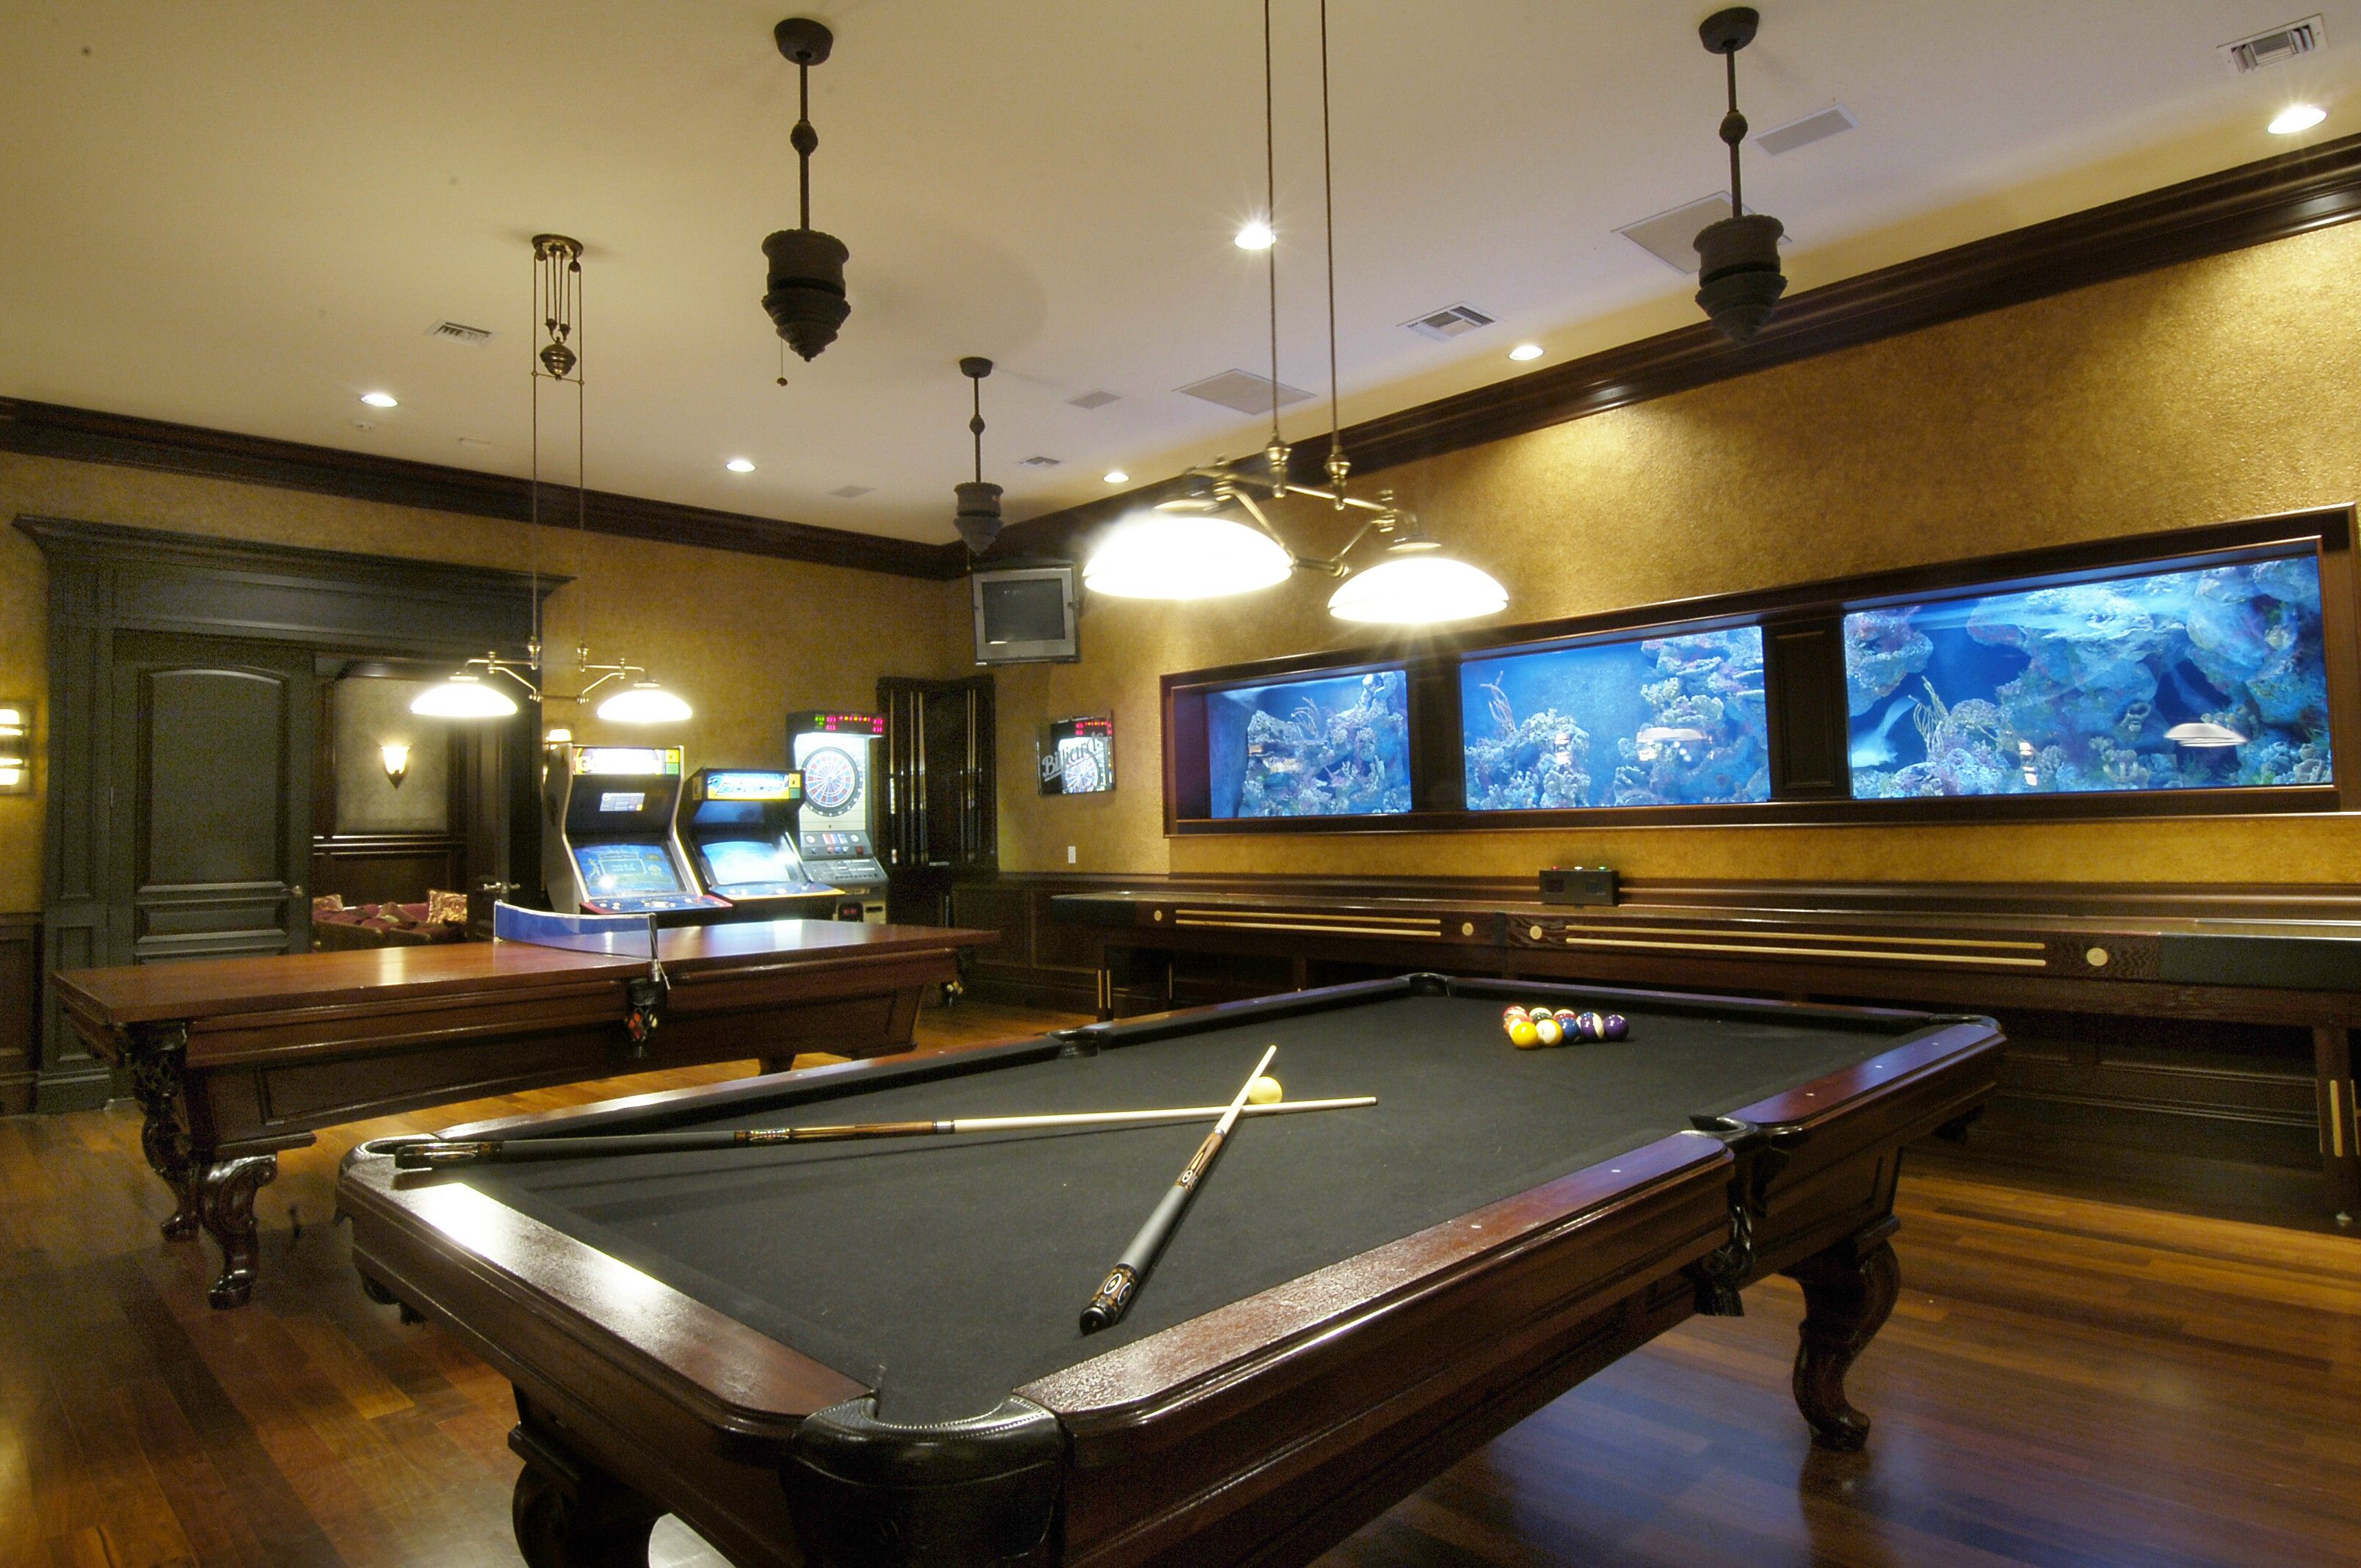 Bedroom Design Games I Don't Even Play Pool But That Doesn't Matteroh And Check Out